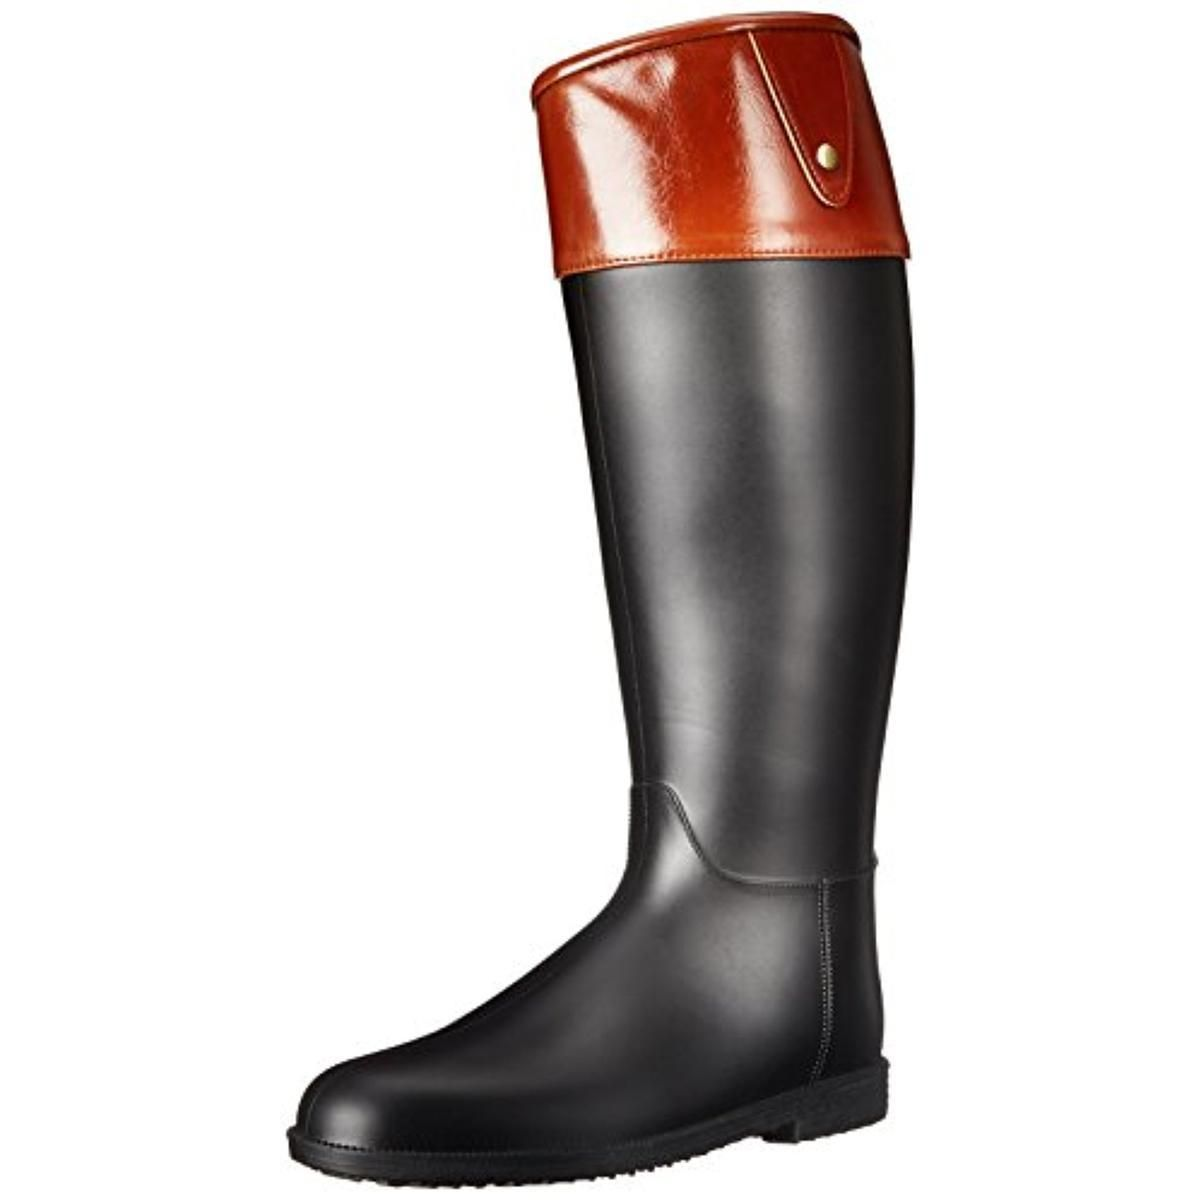 Qupid Womens Maine02 Knee-High Pull On Rain Boots